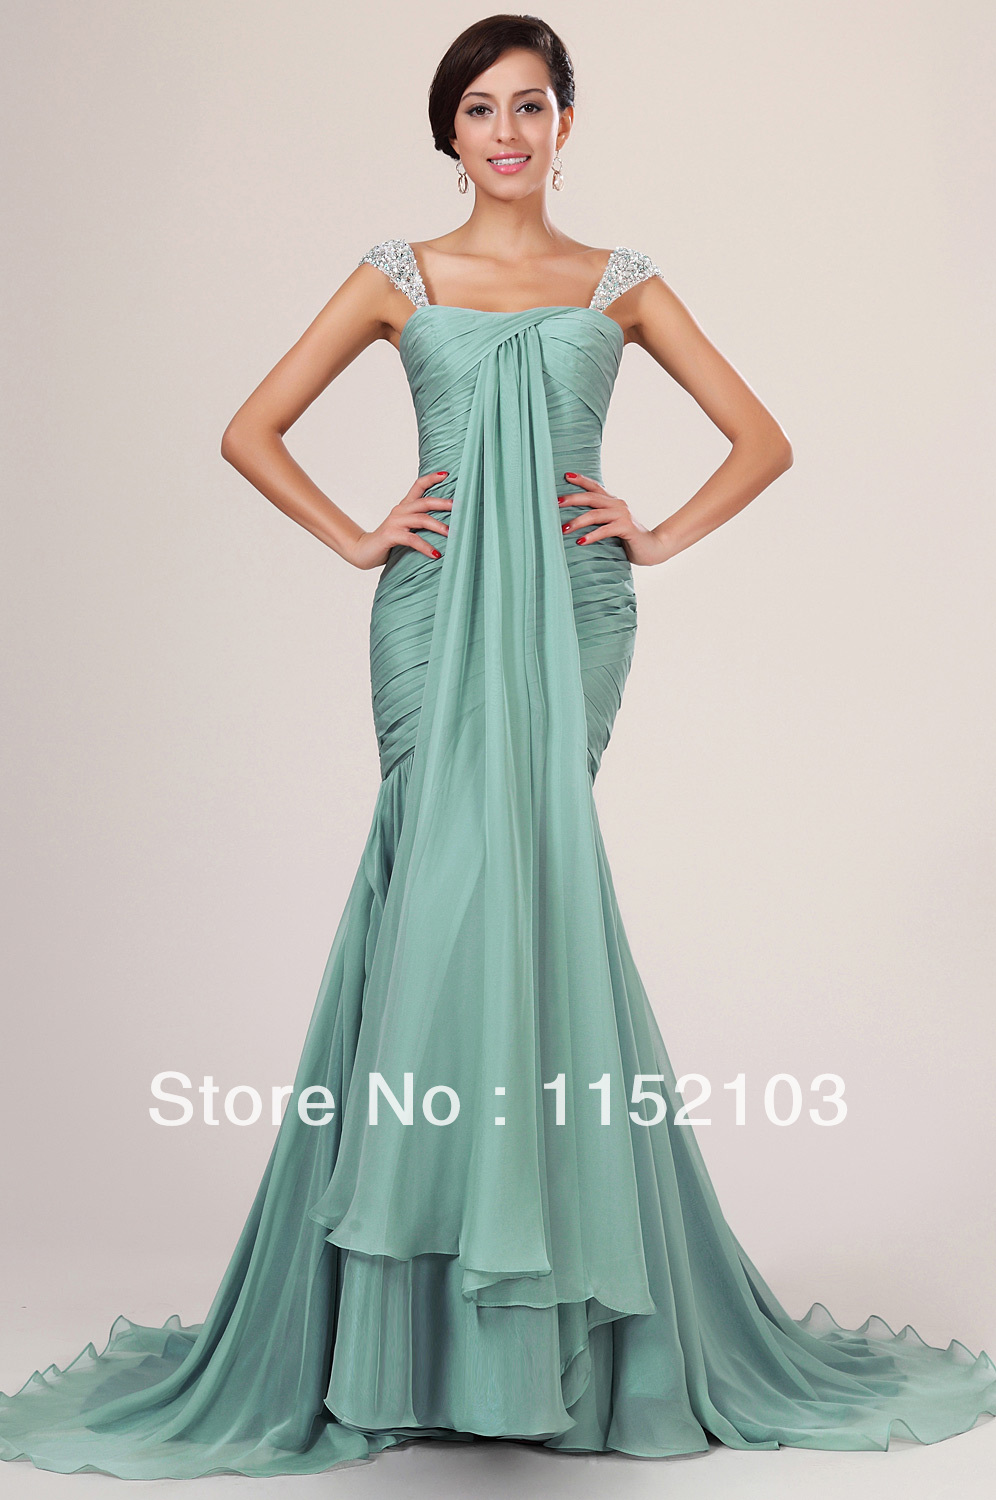 Fantastic Prom Maxi Dresses Uk Component - All Wedding Dresses ...